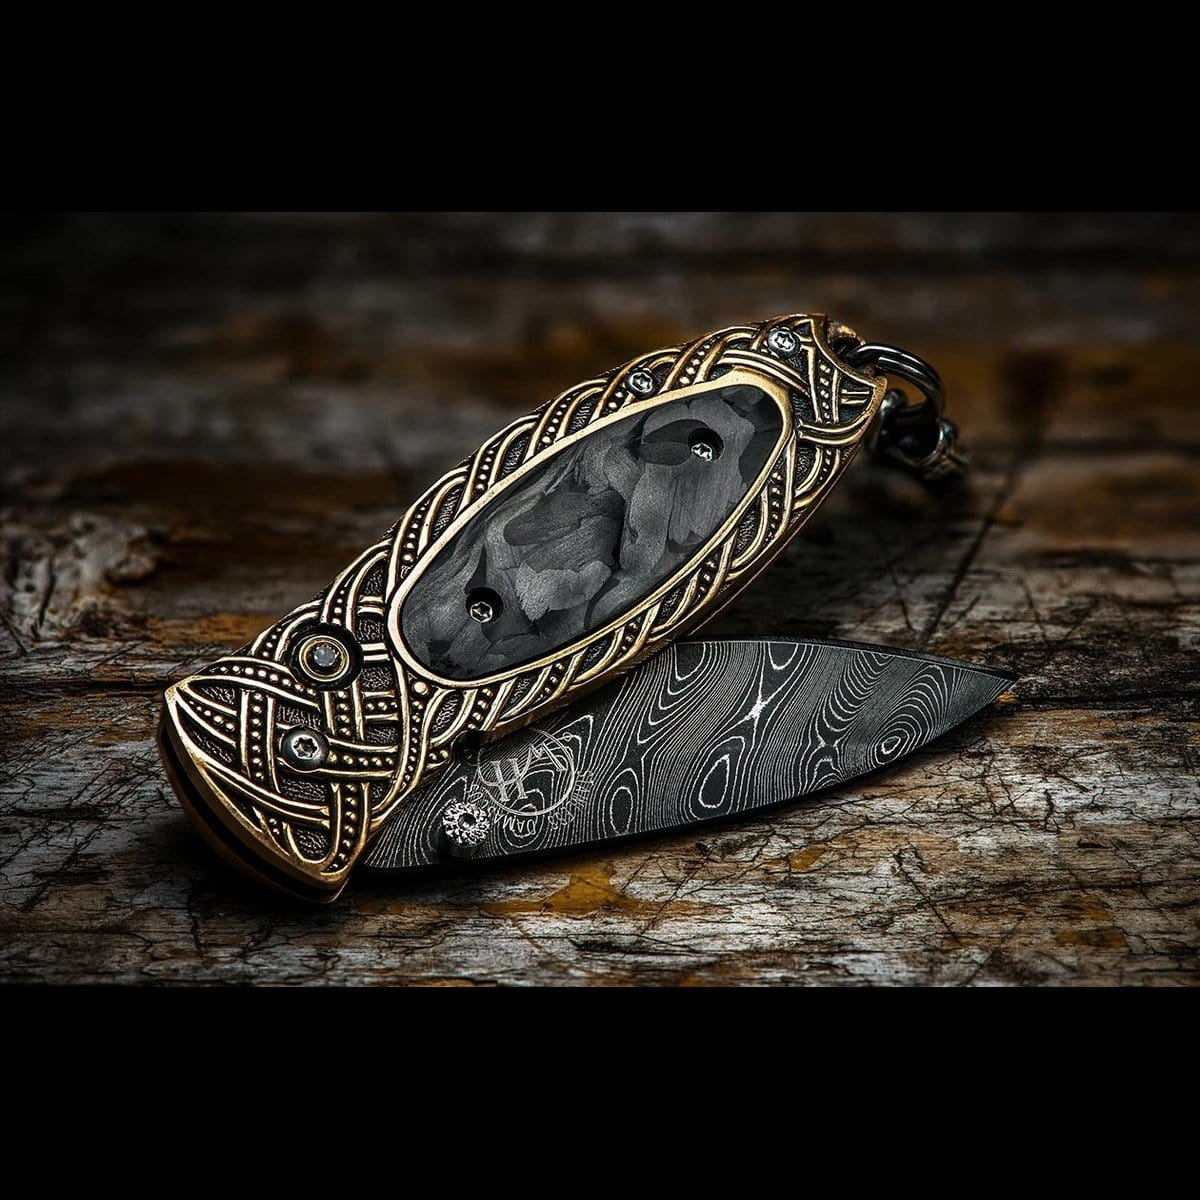 Morpheus Dublin Pendant Knife - B02 DUBLIN-William Henry-Renee Taylor Gallery